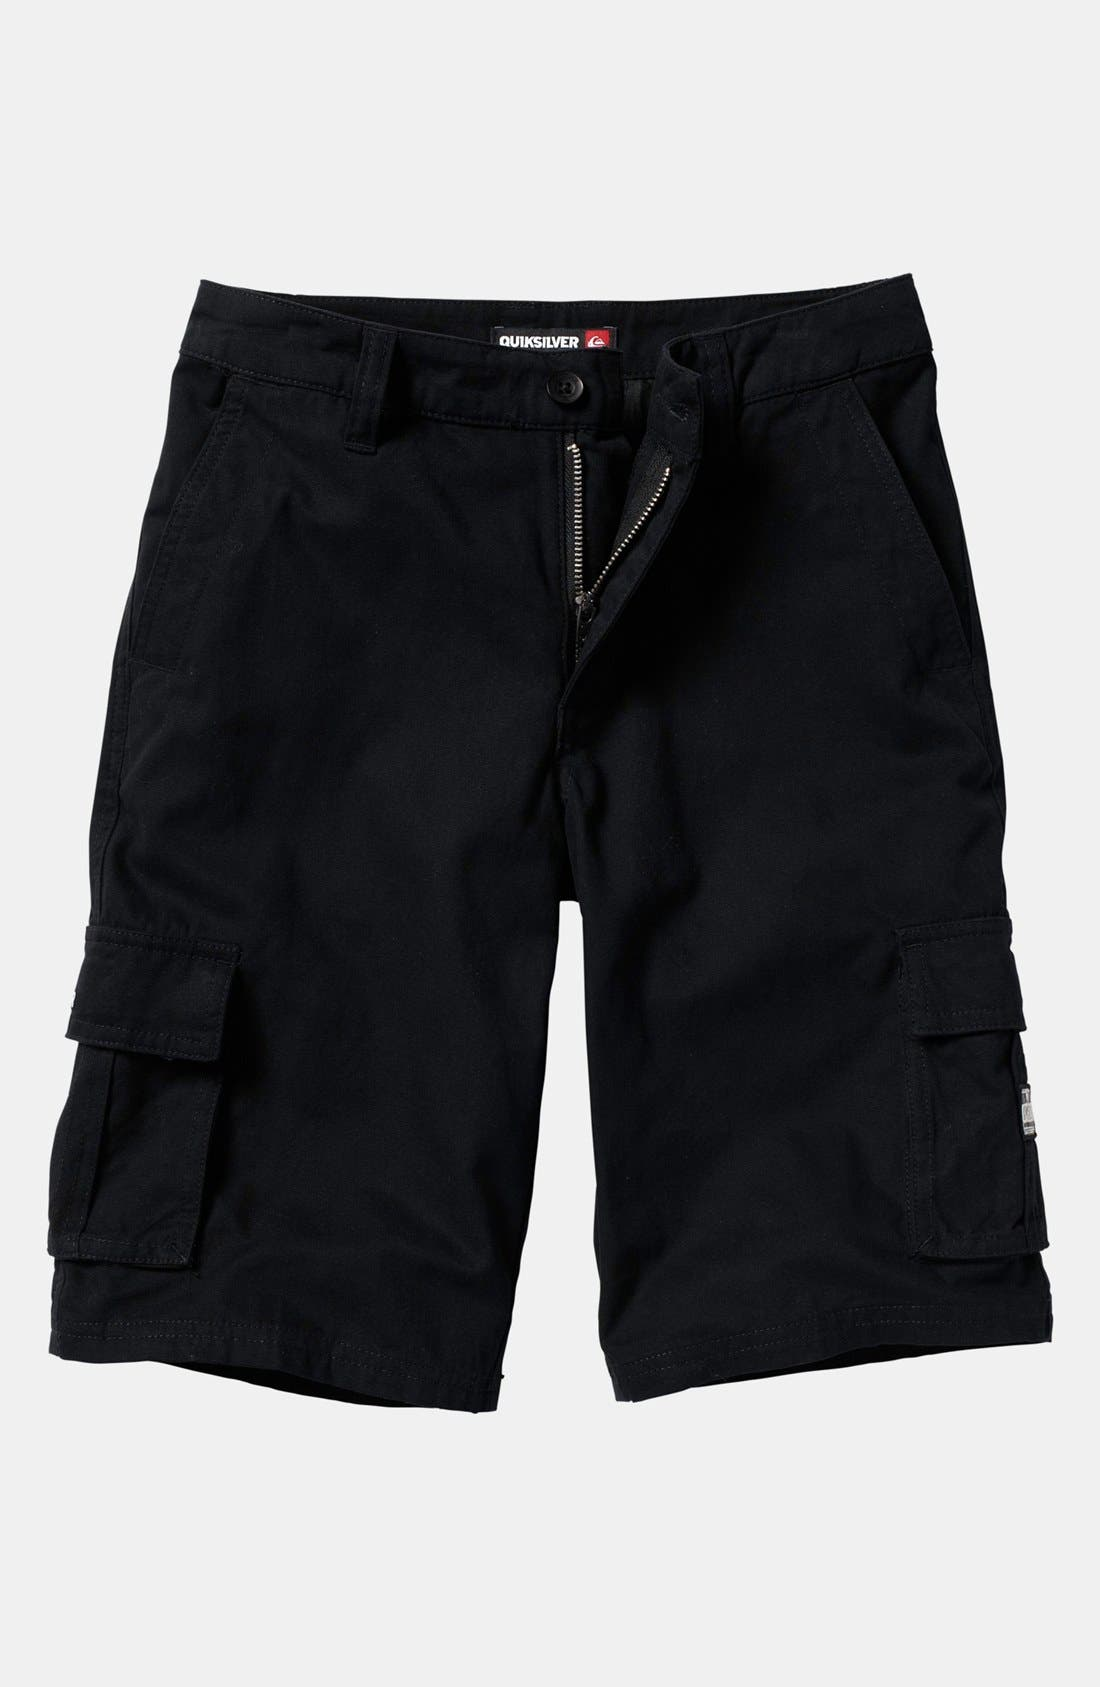 Alternate Image 1 Selected - Quiksilver 'Sue Fley' Shorts